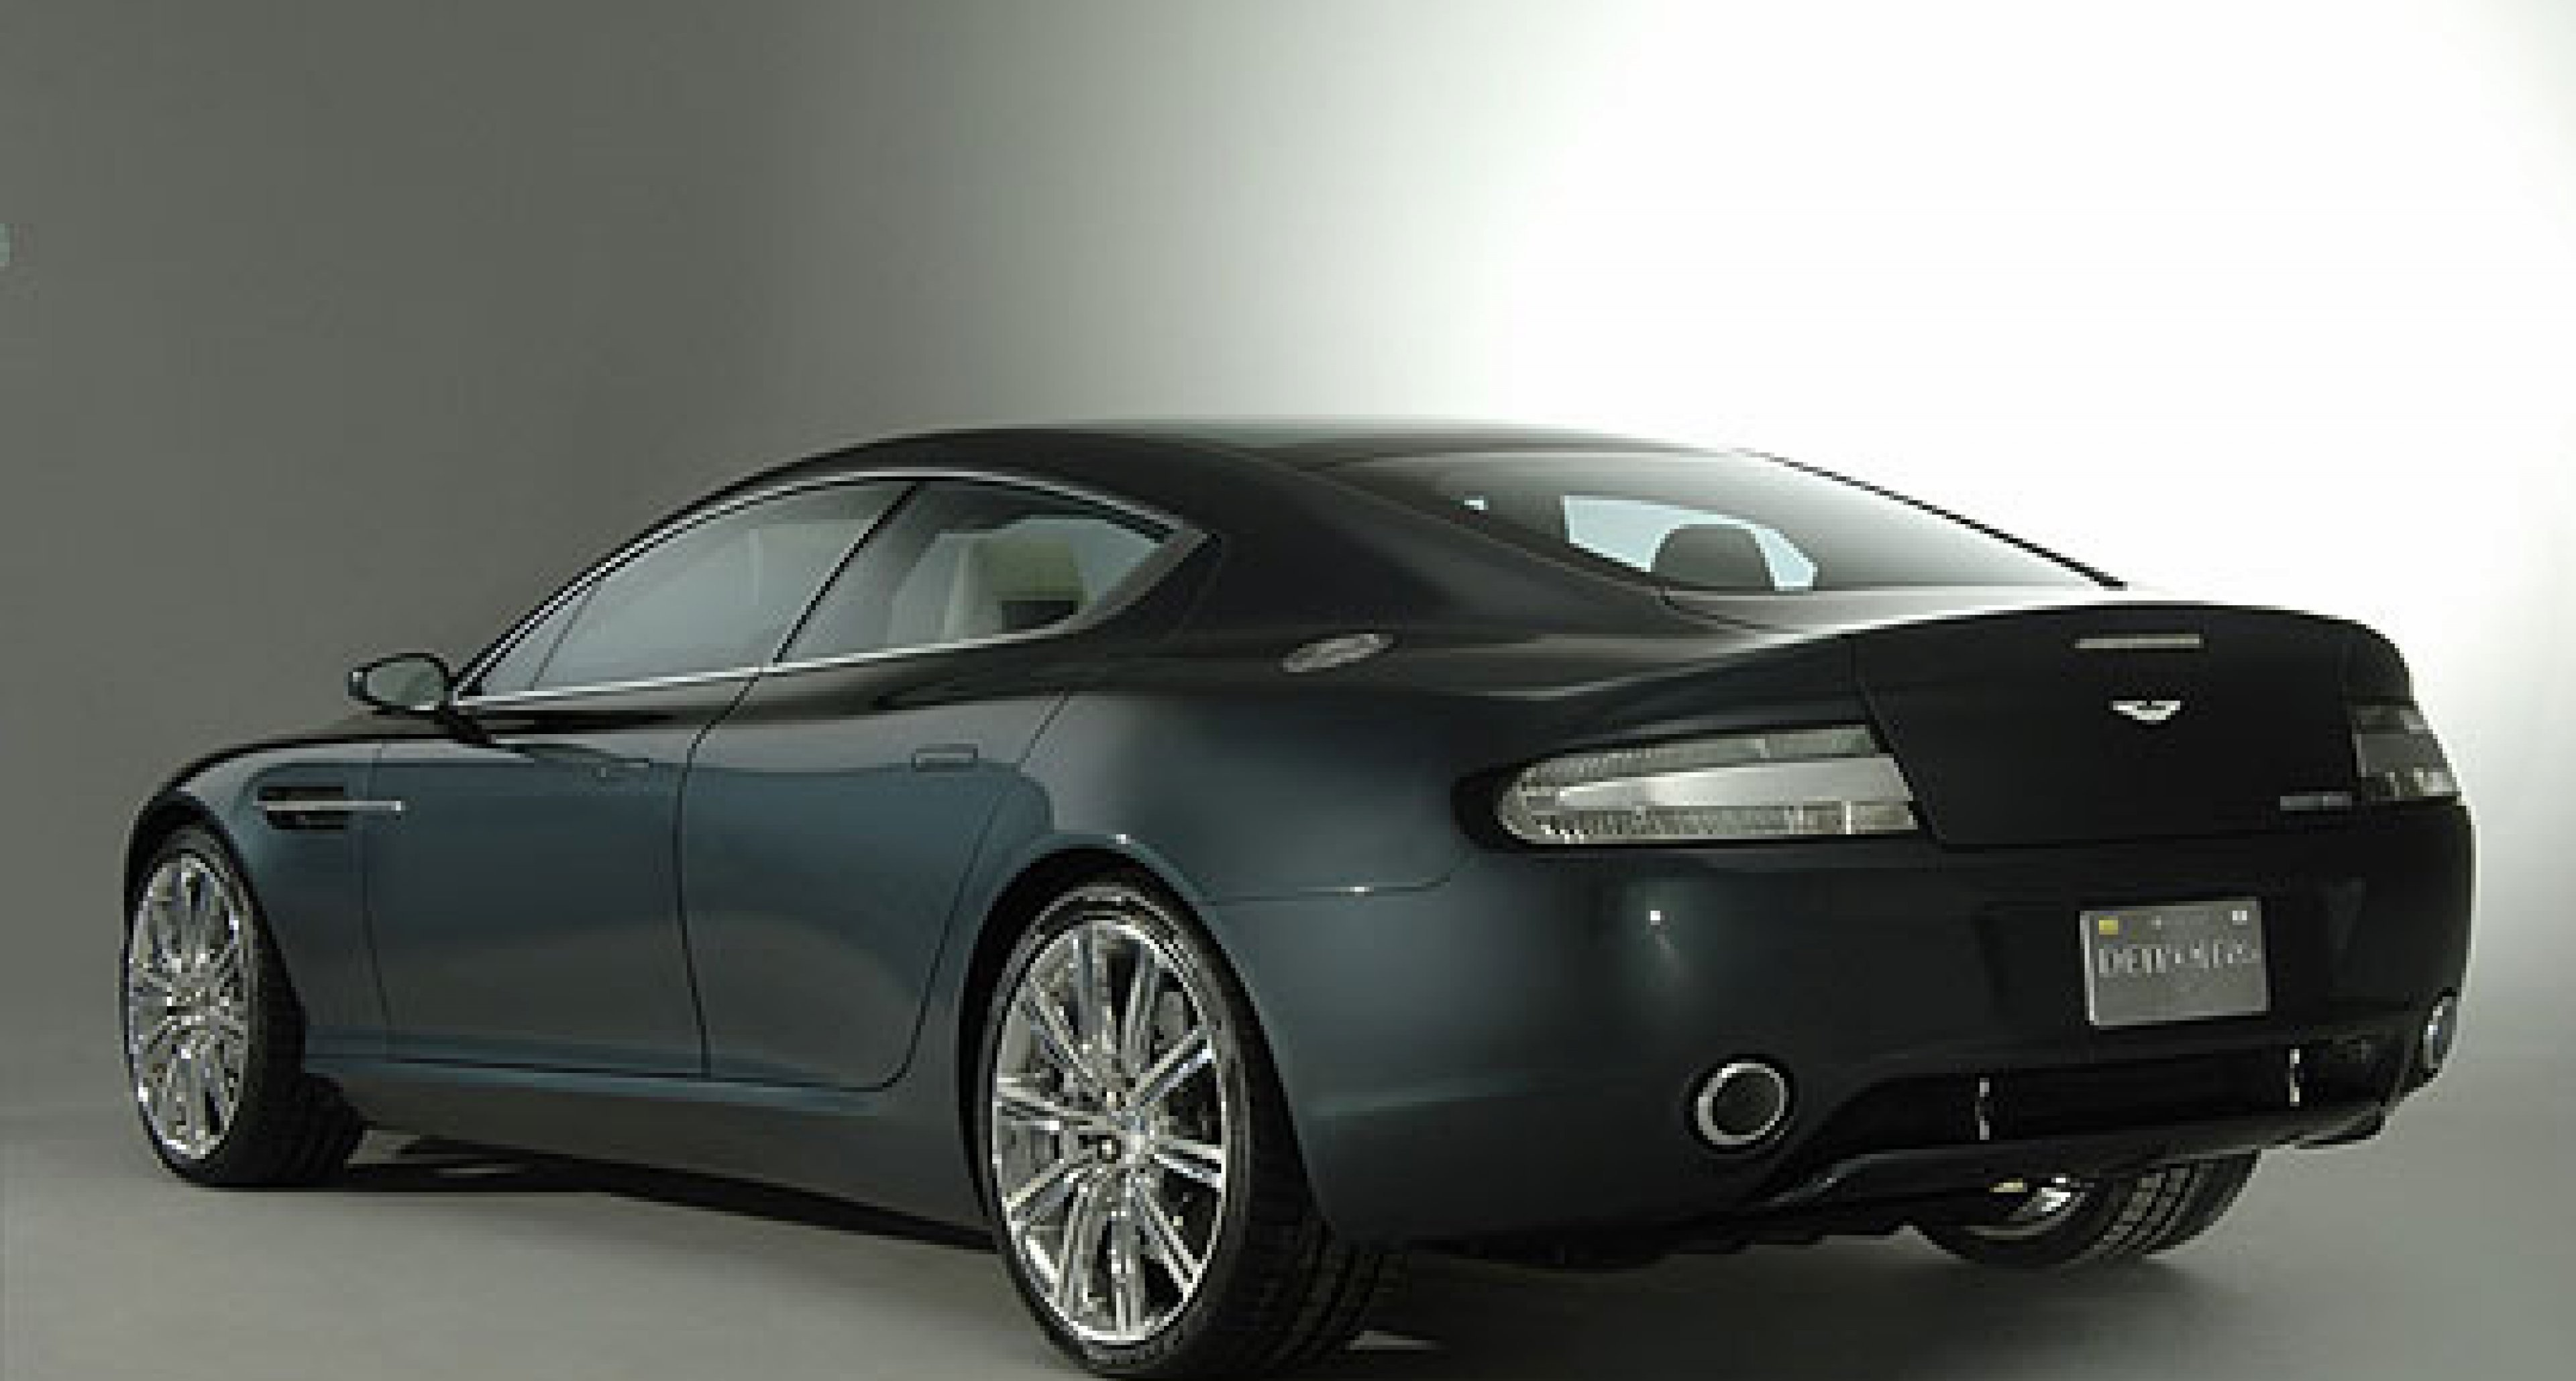 Aston Martin Rapide launched at Detroit